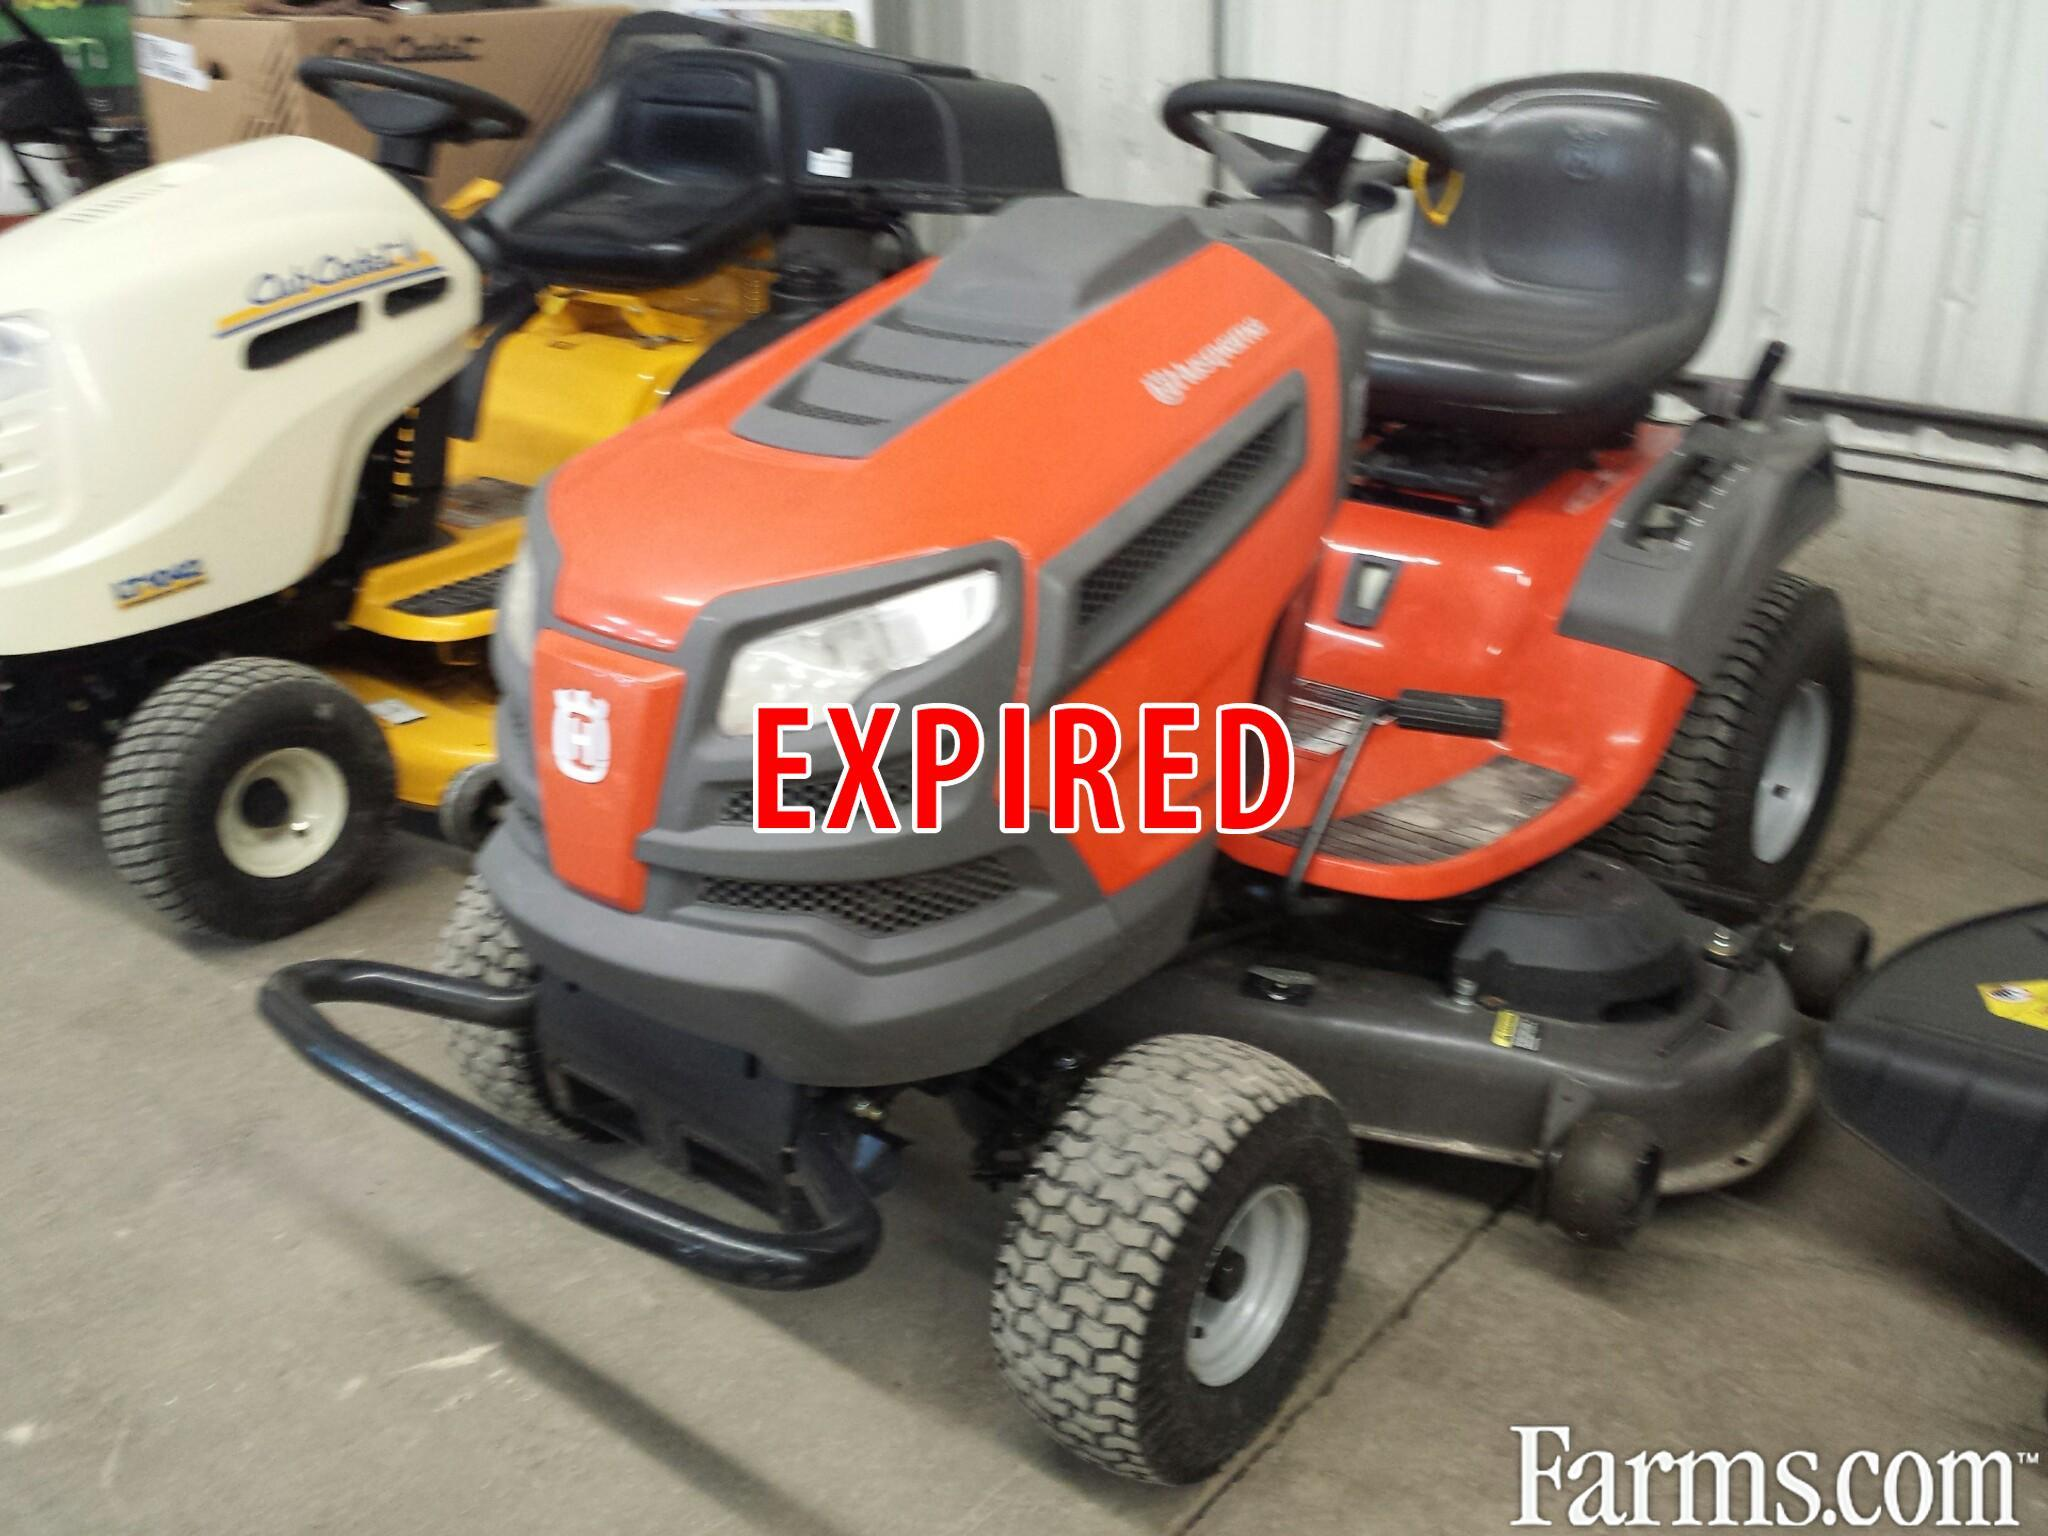 riding lawn mowers in canada 2 hp single phase motor wiring diagram husqvarna yth23v48 for sale farms